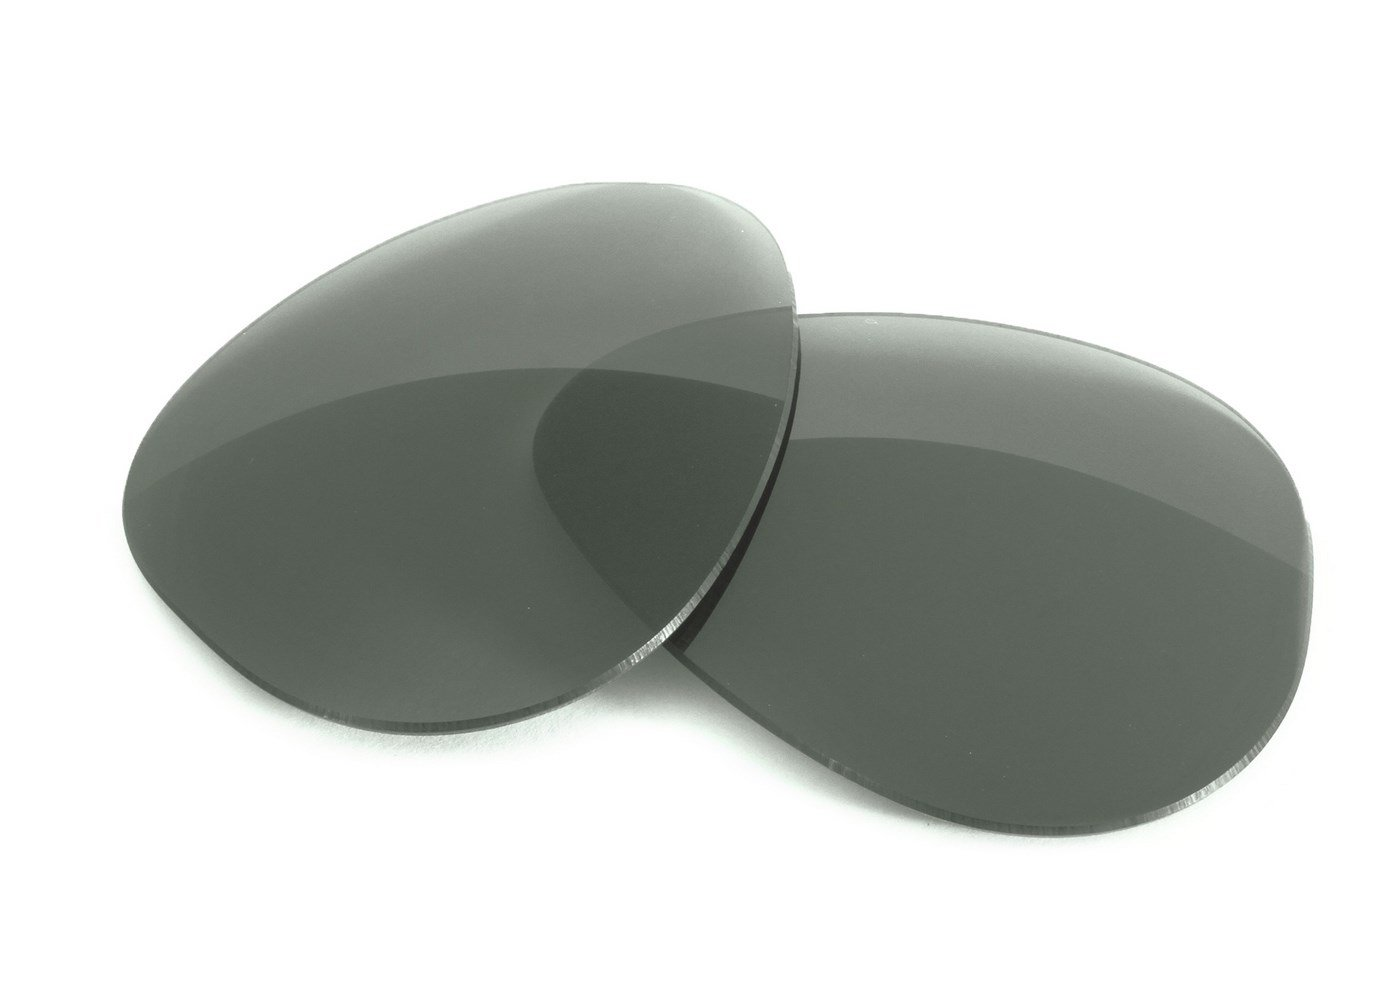 Fuse Lenses for Ray-Ban RB3025 Aviator Large (58mm) - G15 Polarized by Fuse Lenses